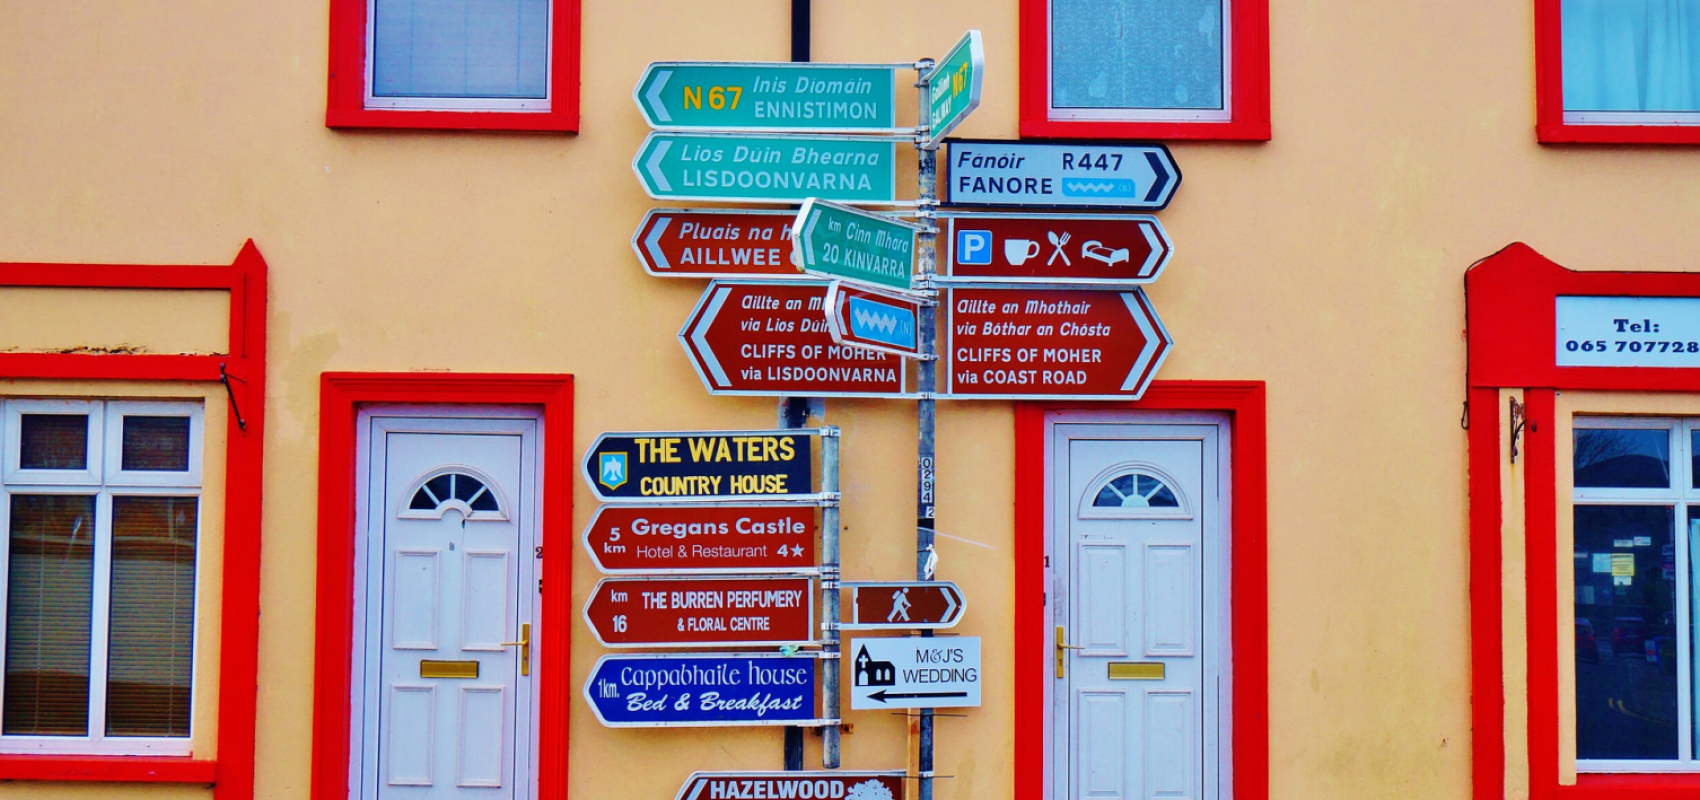 Colorful street sign in Galway